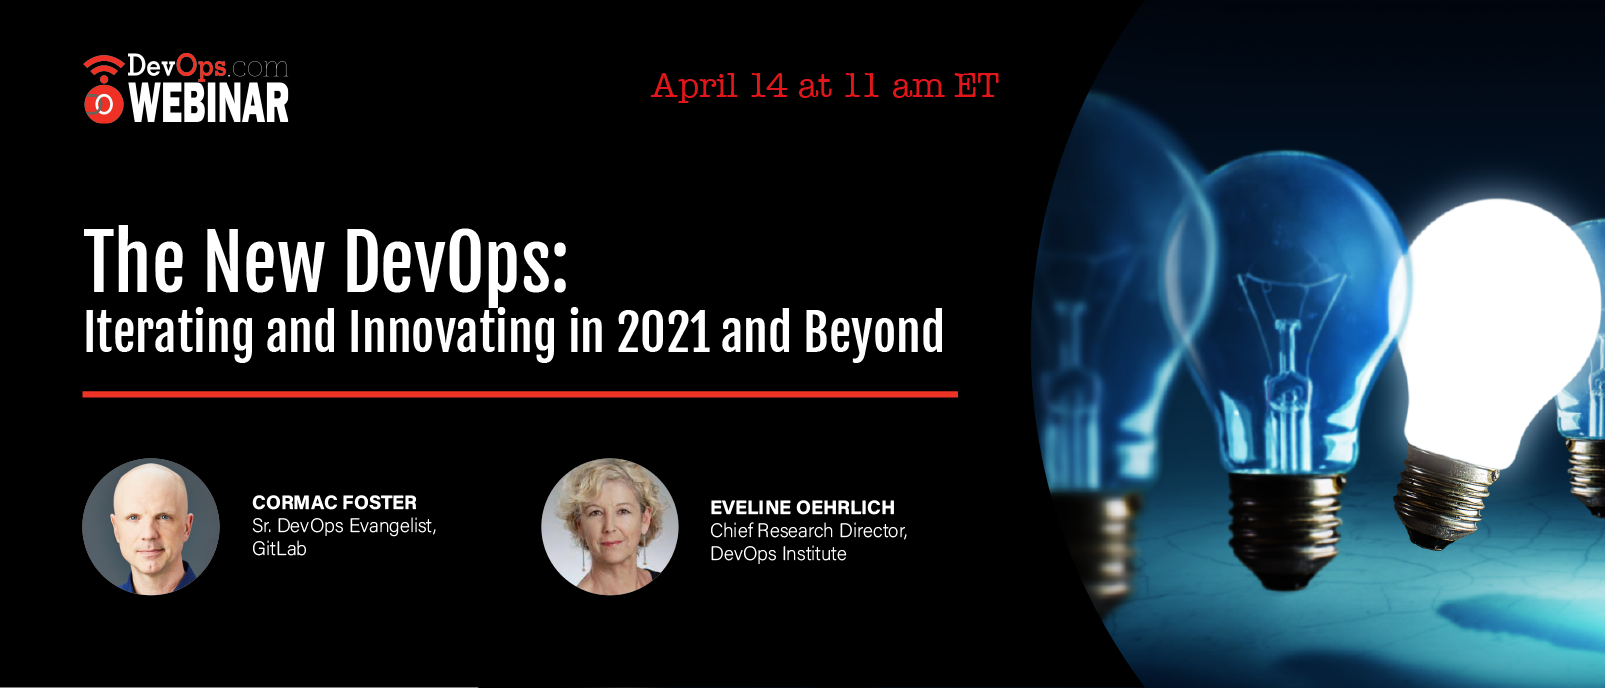 The New DevOps: Iterating and Innovating in 2021 and Beyond